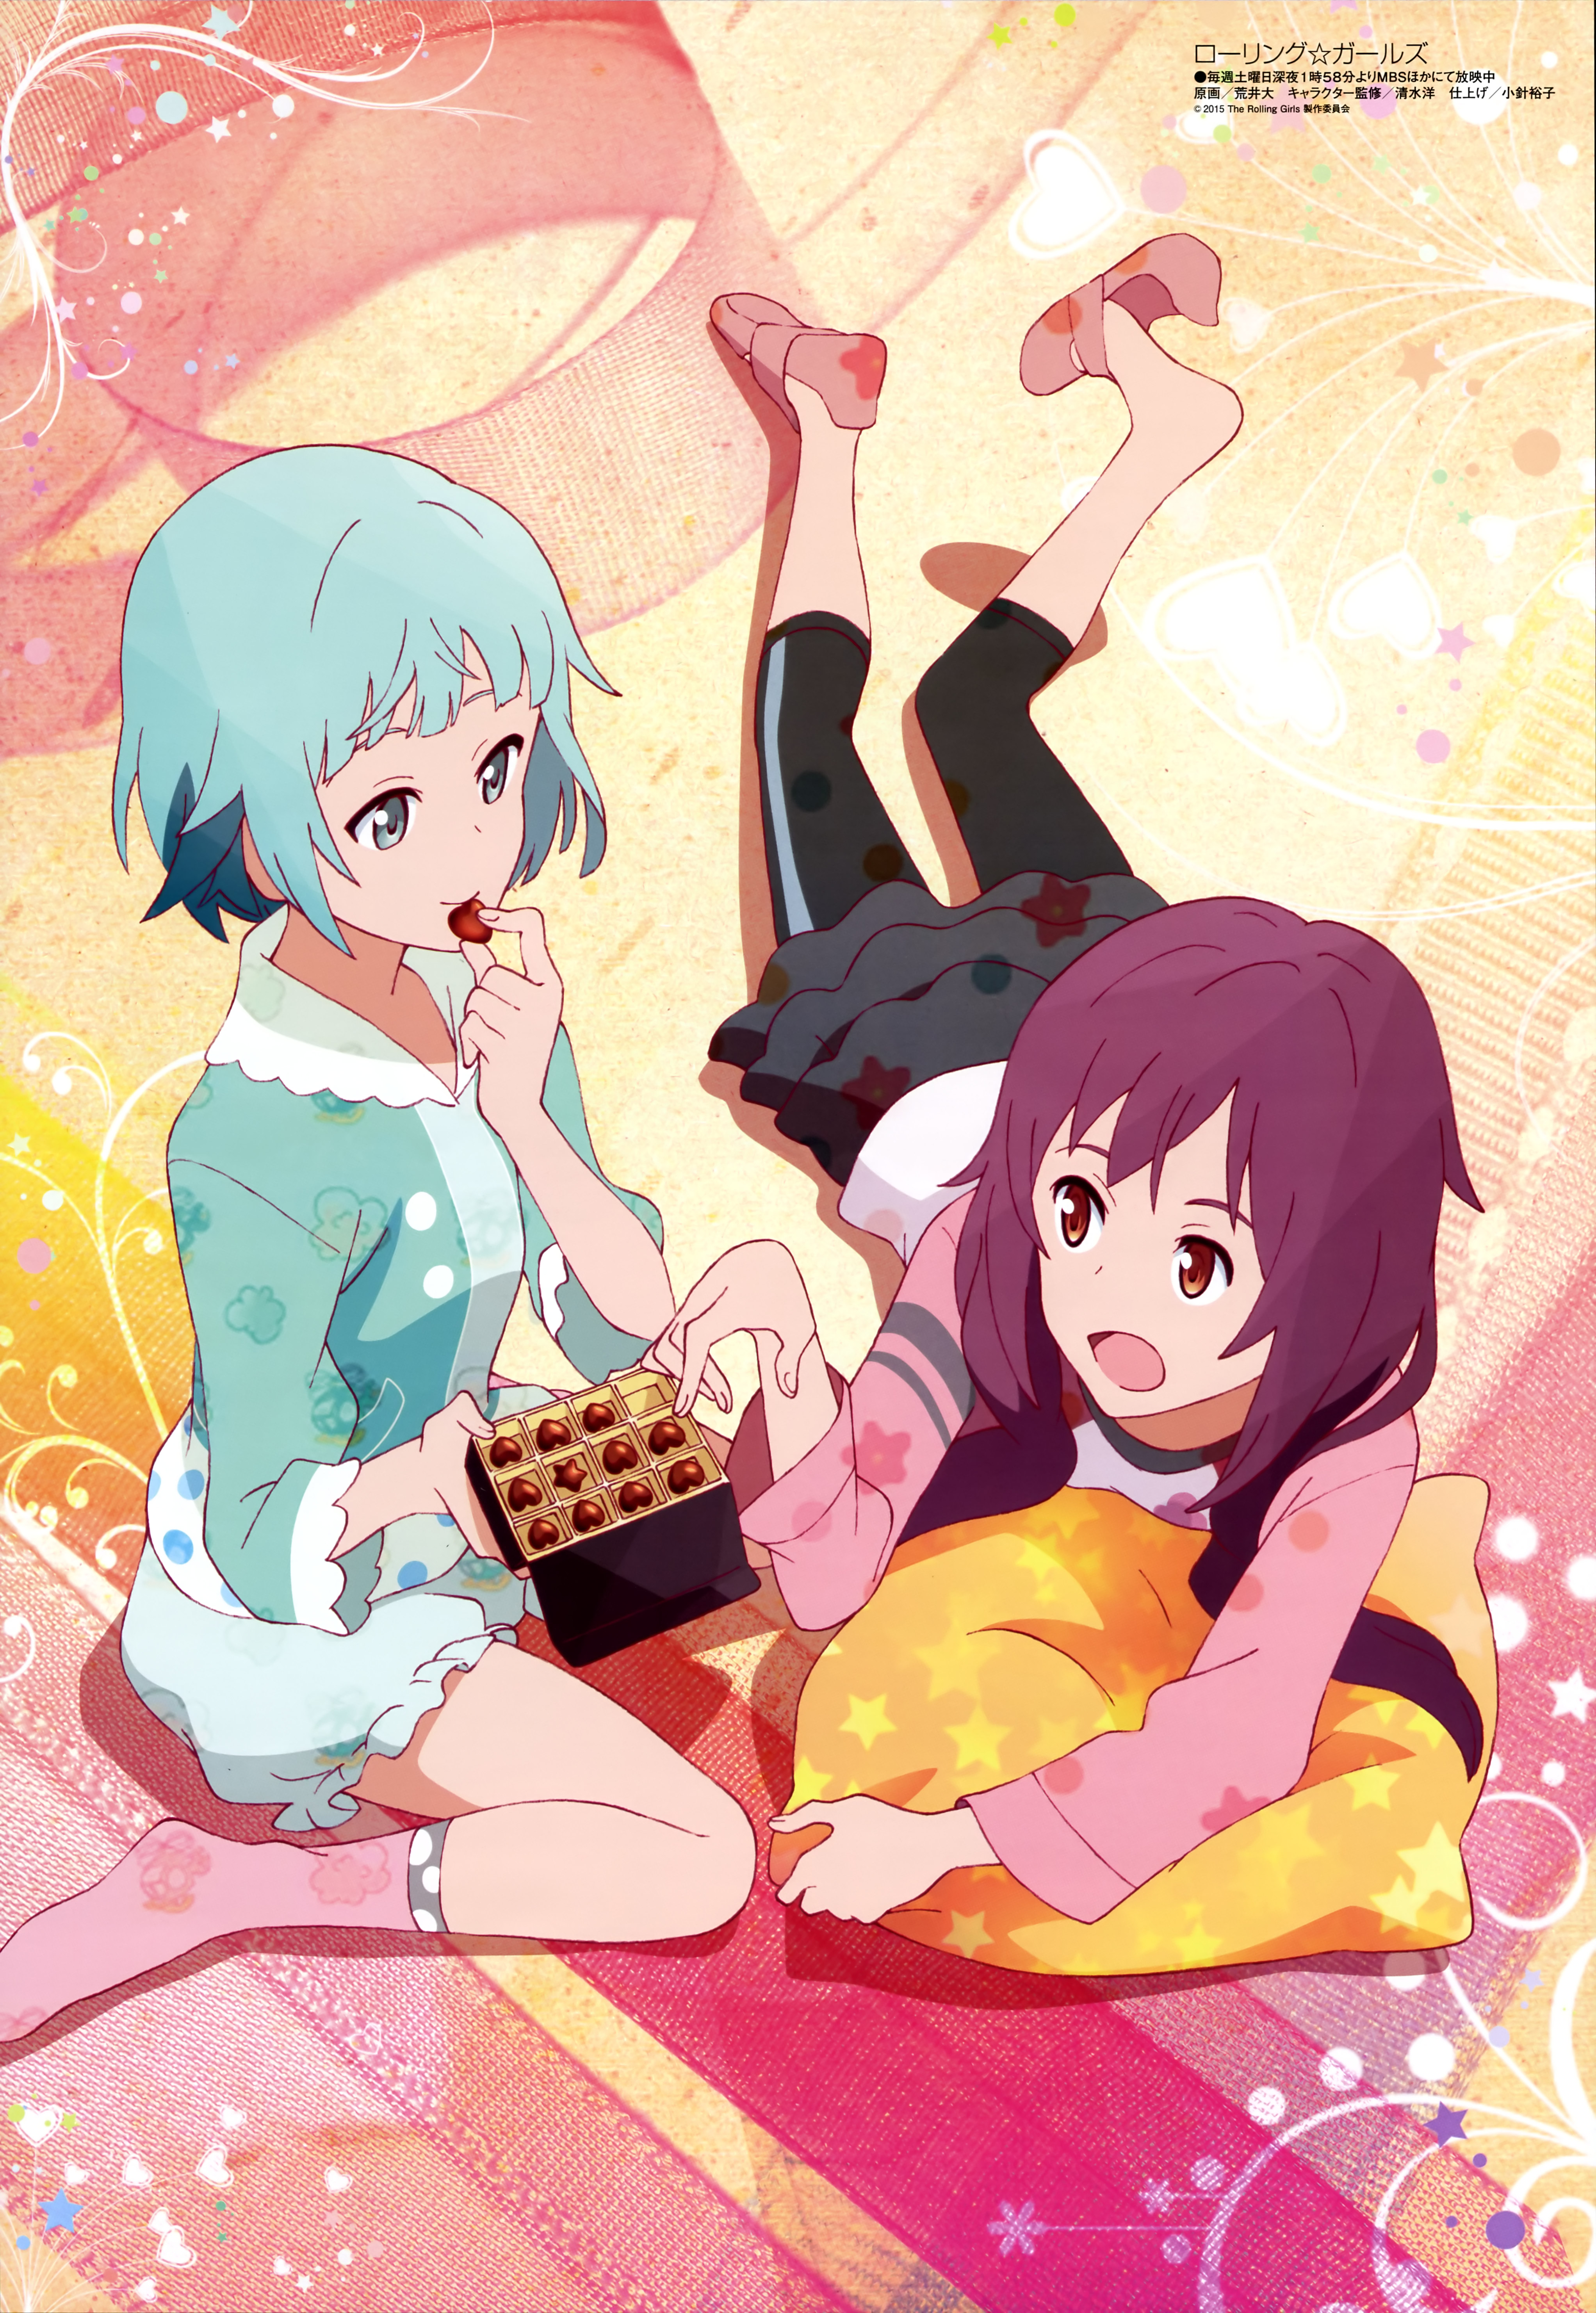 Megami MAGAZINE April 2015 anime posters Haruhichan.com The Rolling Girls